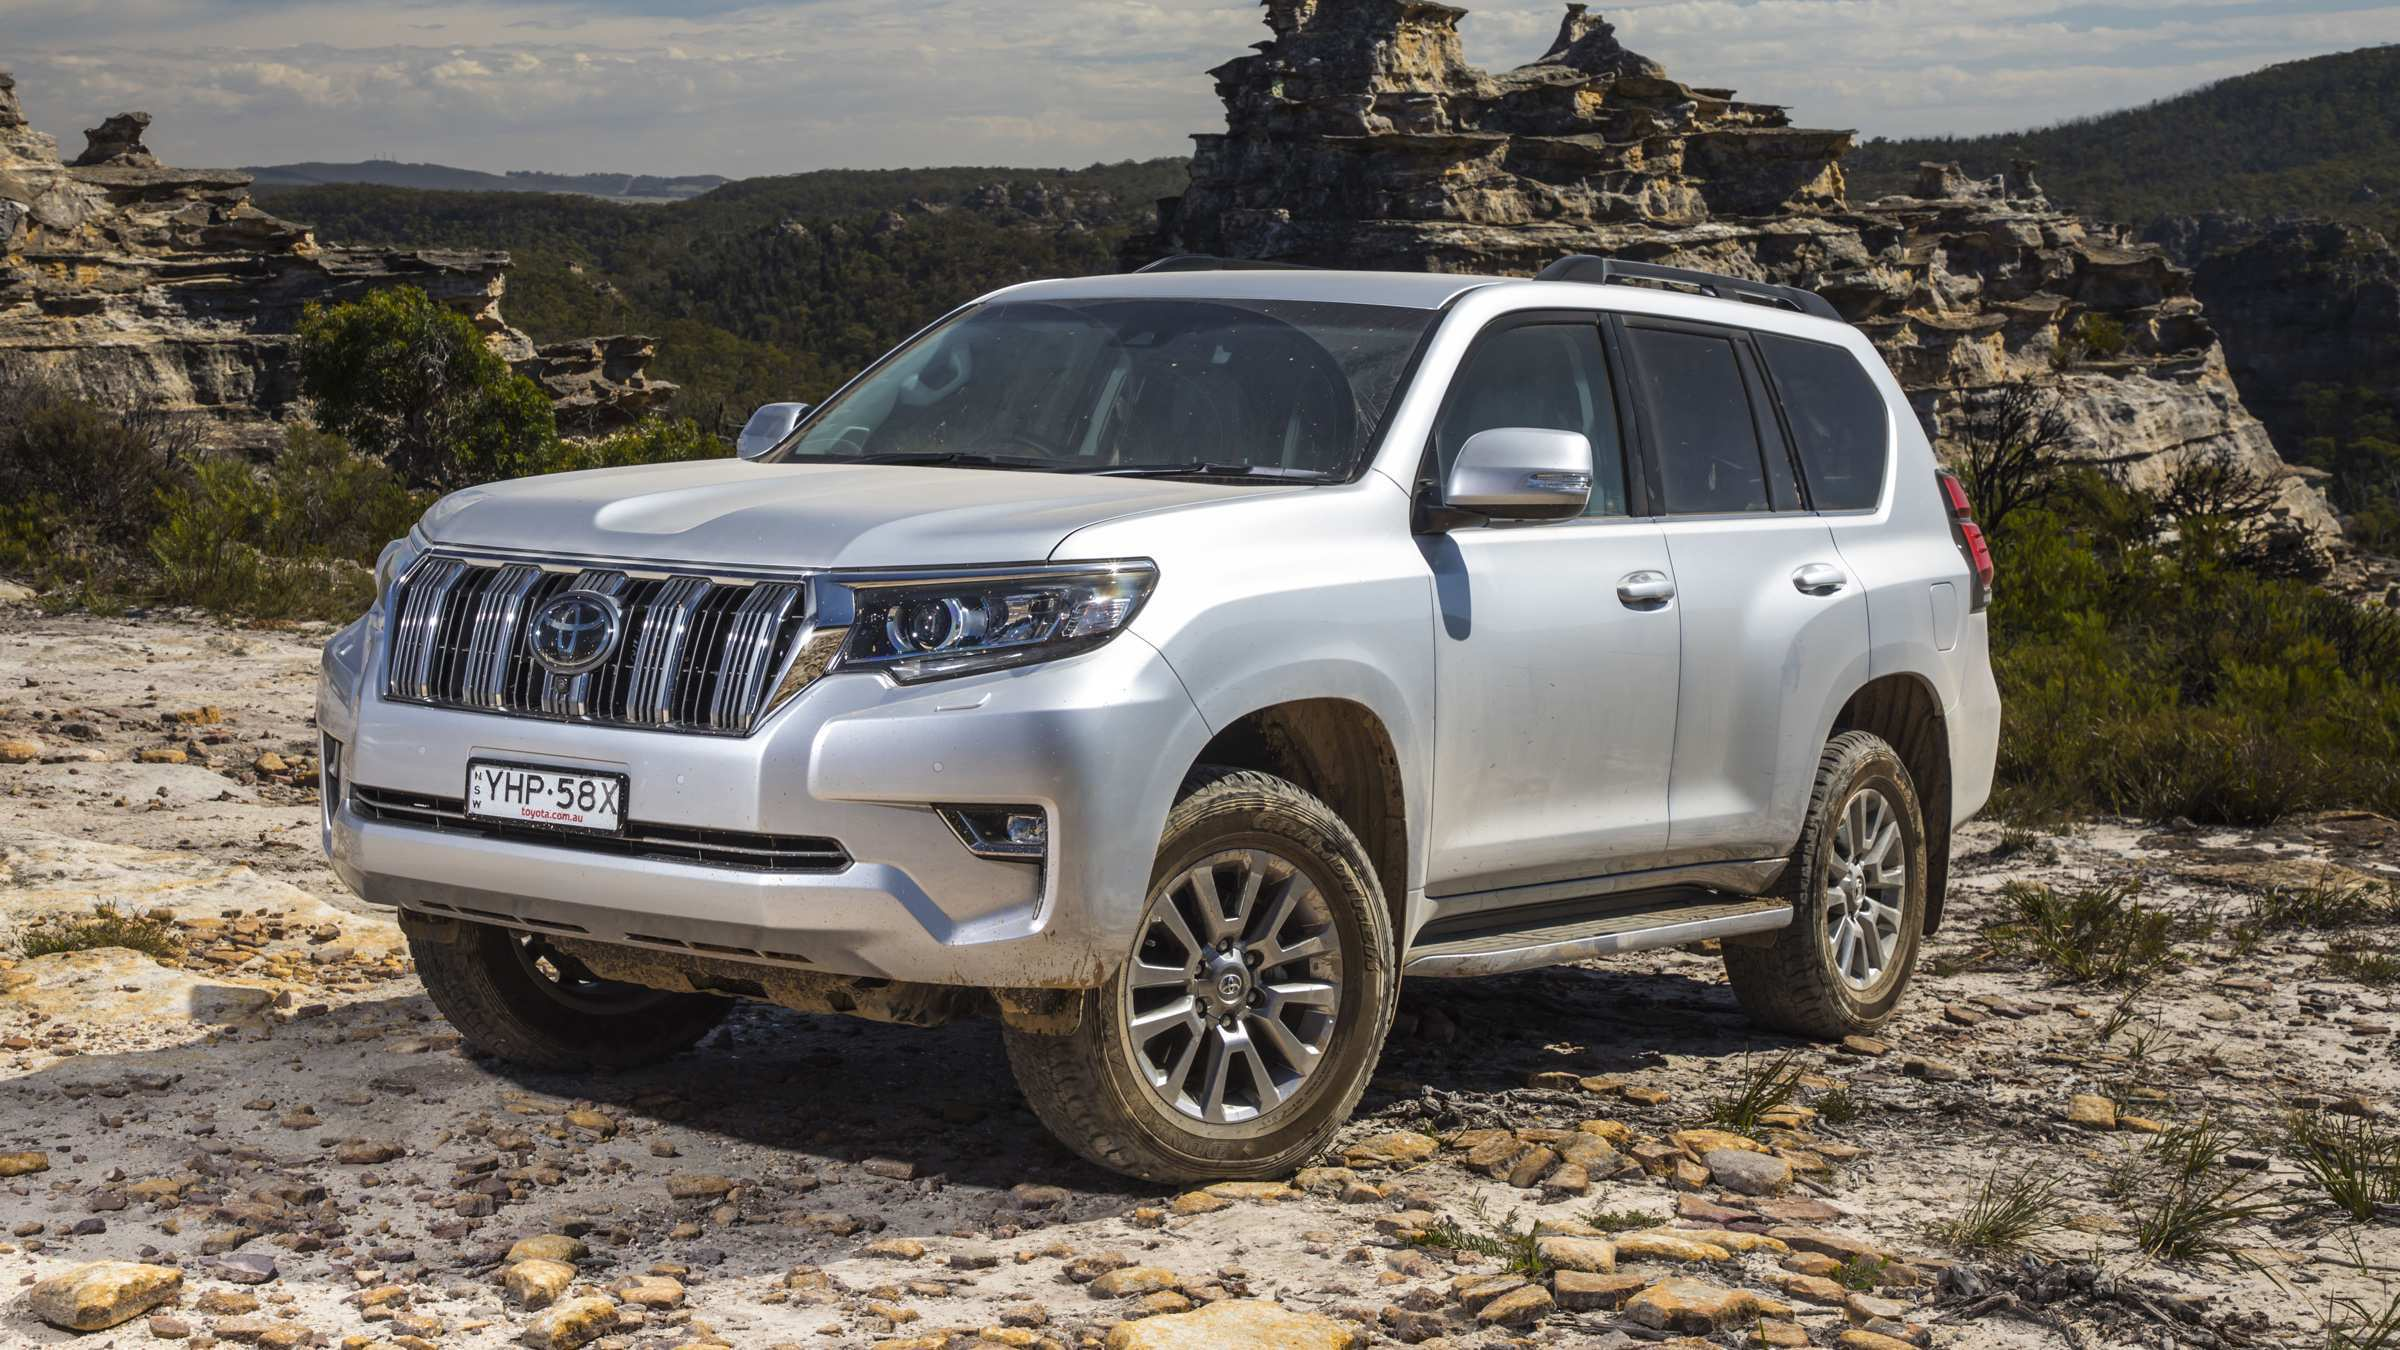 71 All New Toyota Prado 2019 Configurations